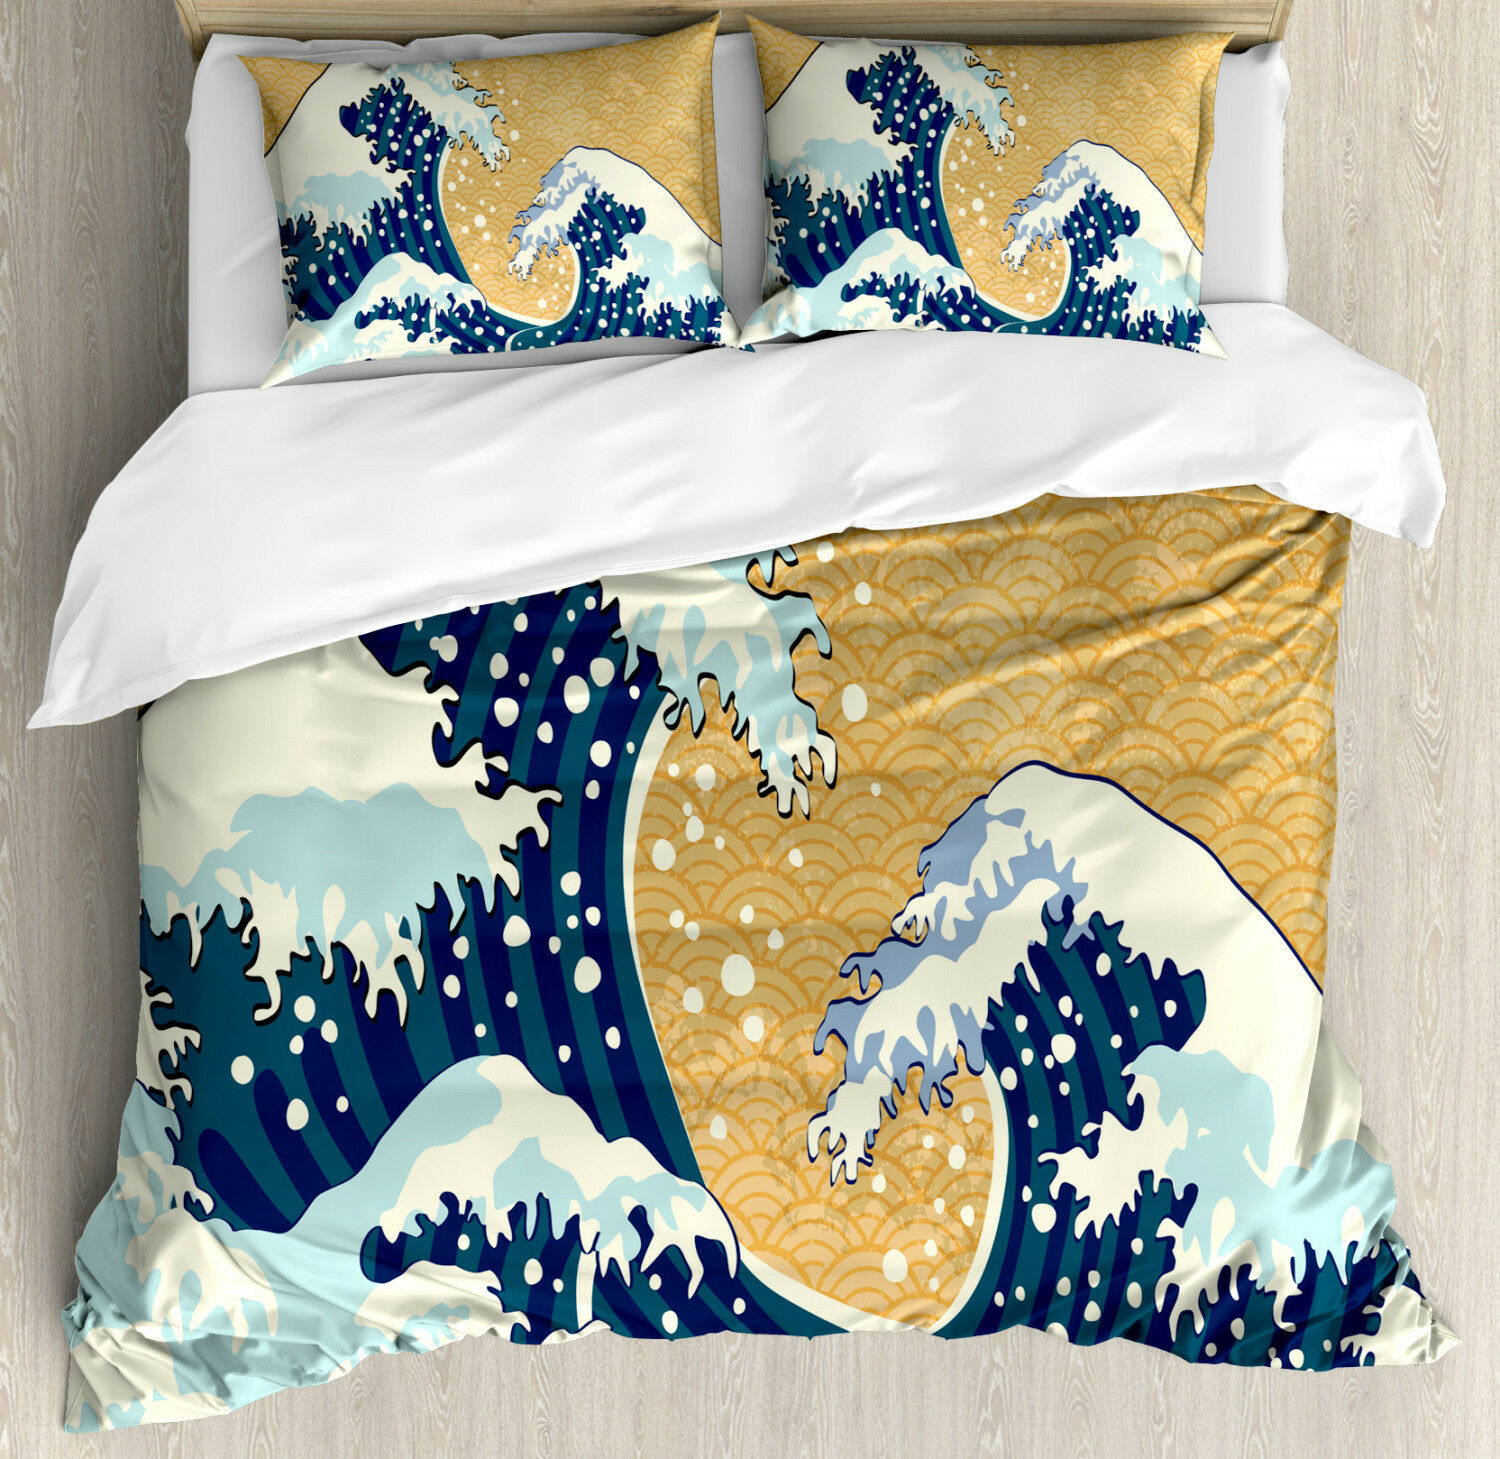 Japanese Wave Duvet Cover Set with Pillow Shams Foamy Sea Storm Print